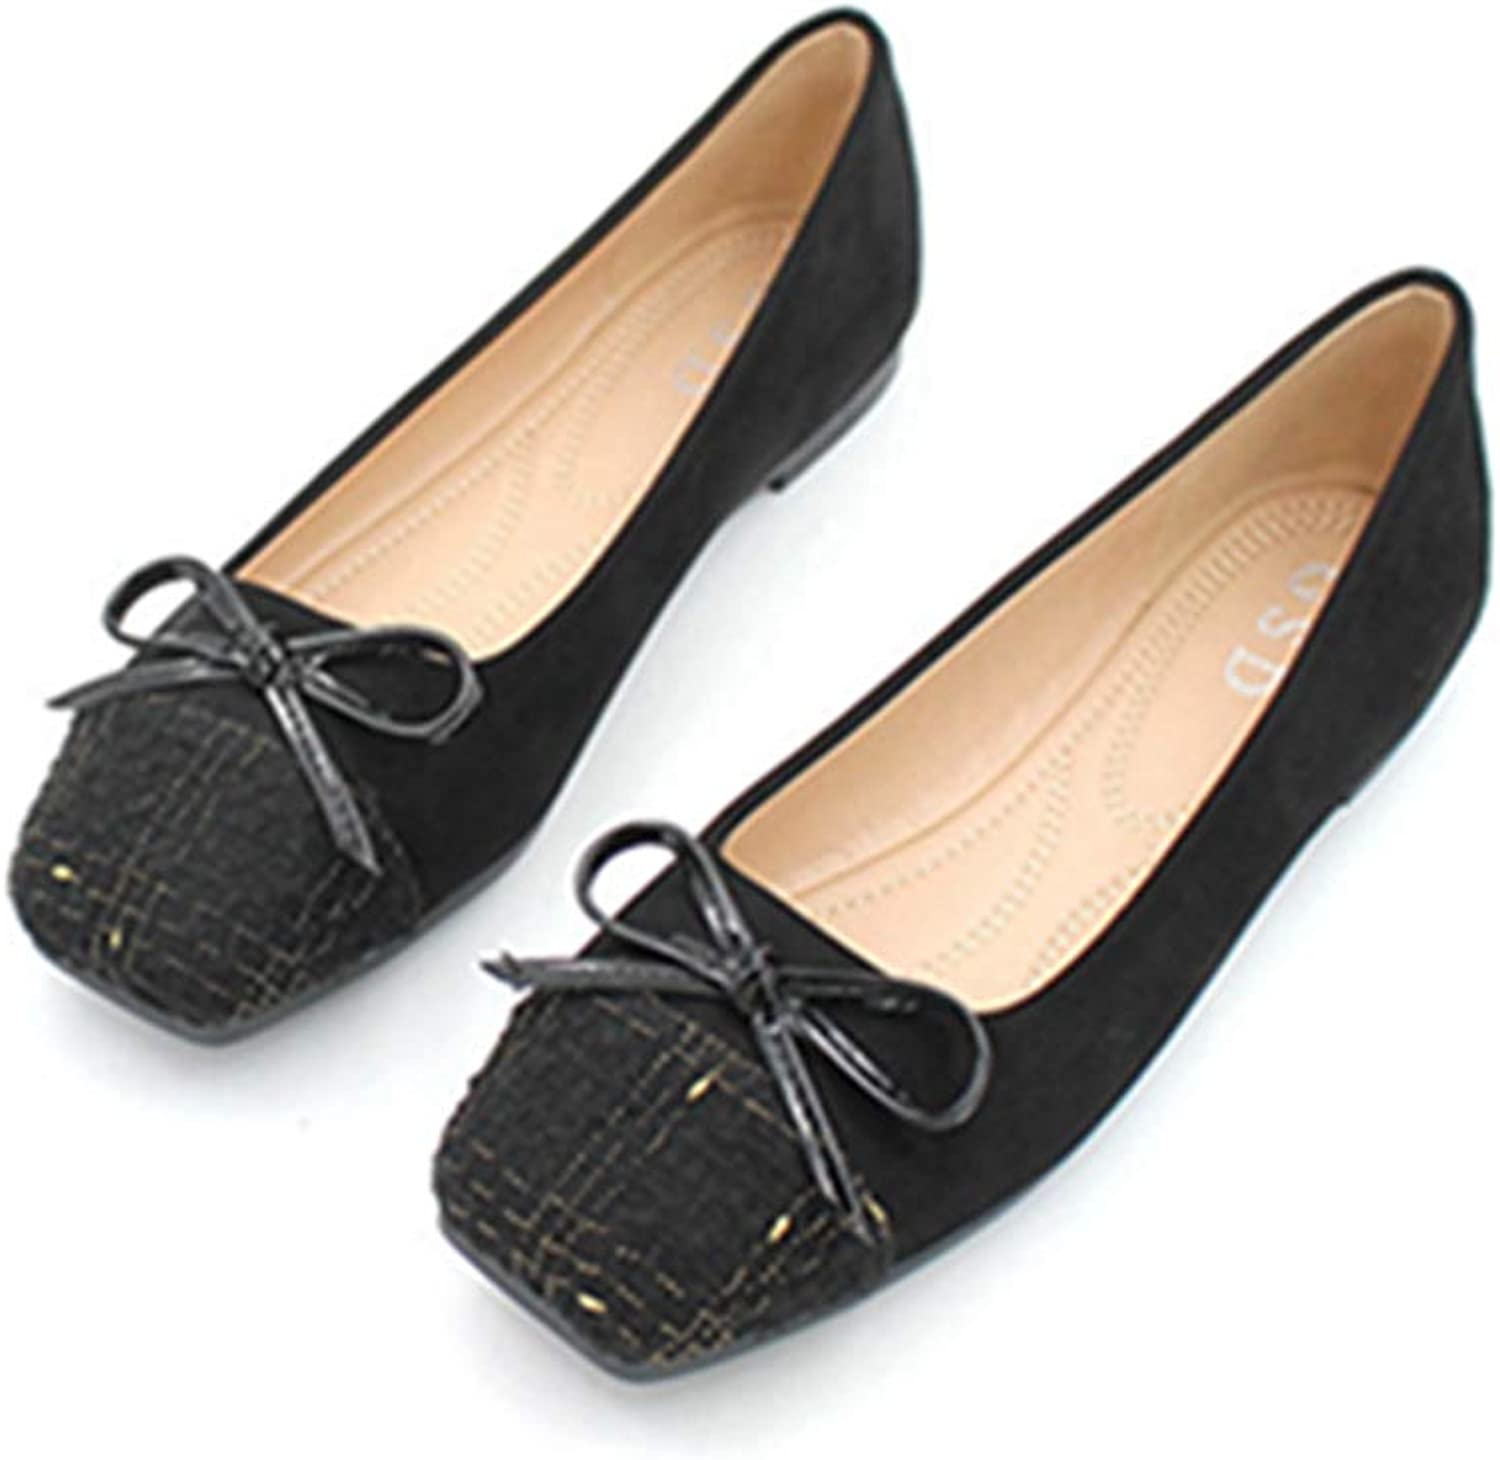 Kyle Walsh Pa Women Ballet Flats shoes Bowknot Slip-on Ladies Casual Soft Working Driving Moccasins